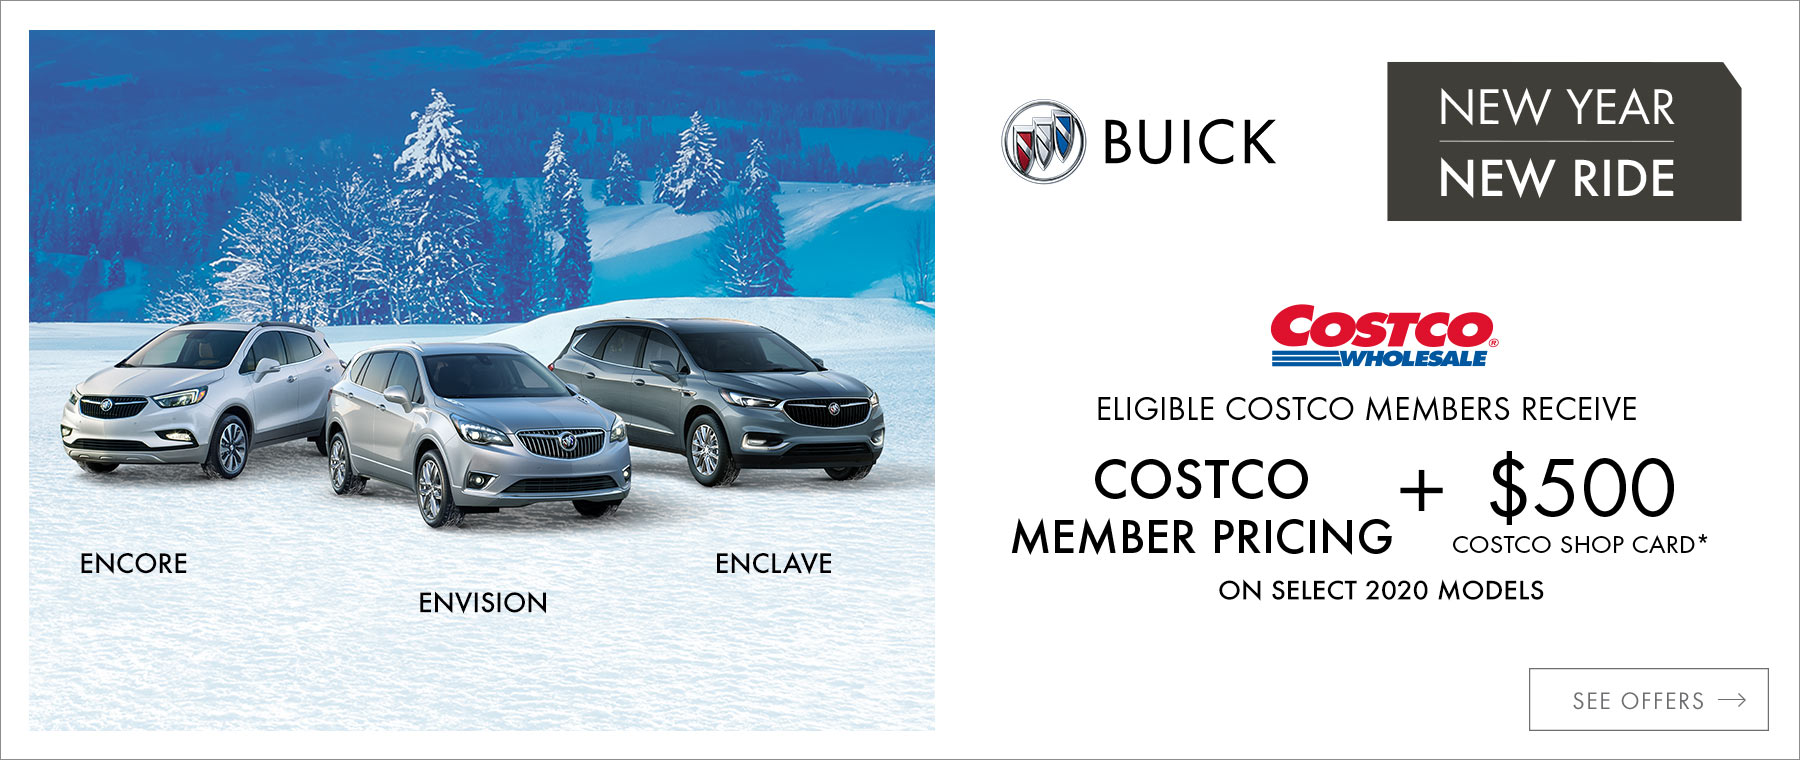 2019 Buick Multiline Costco Member Pricing +5000 Costco Shop Card